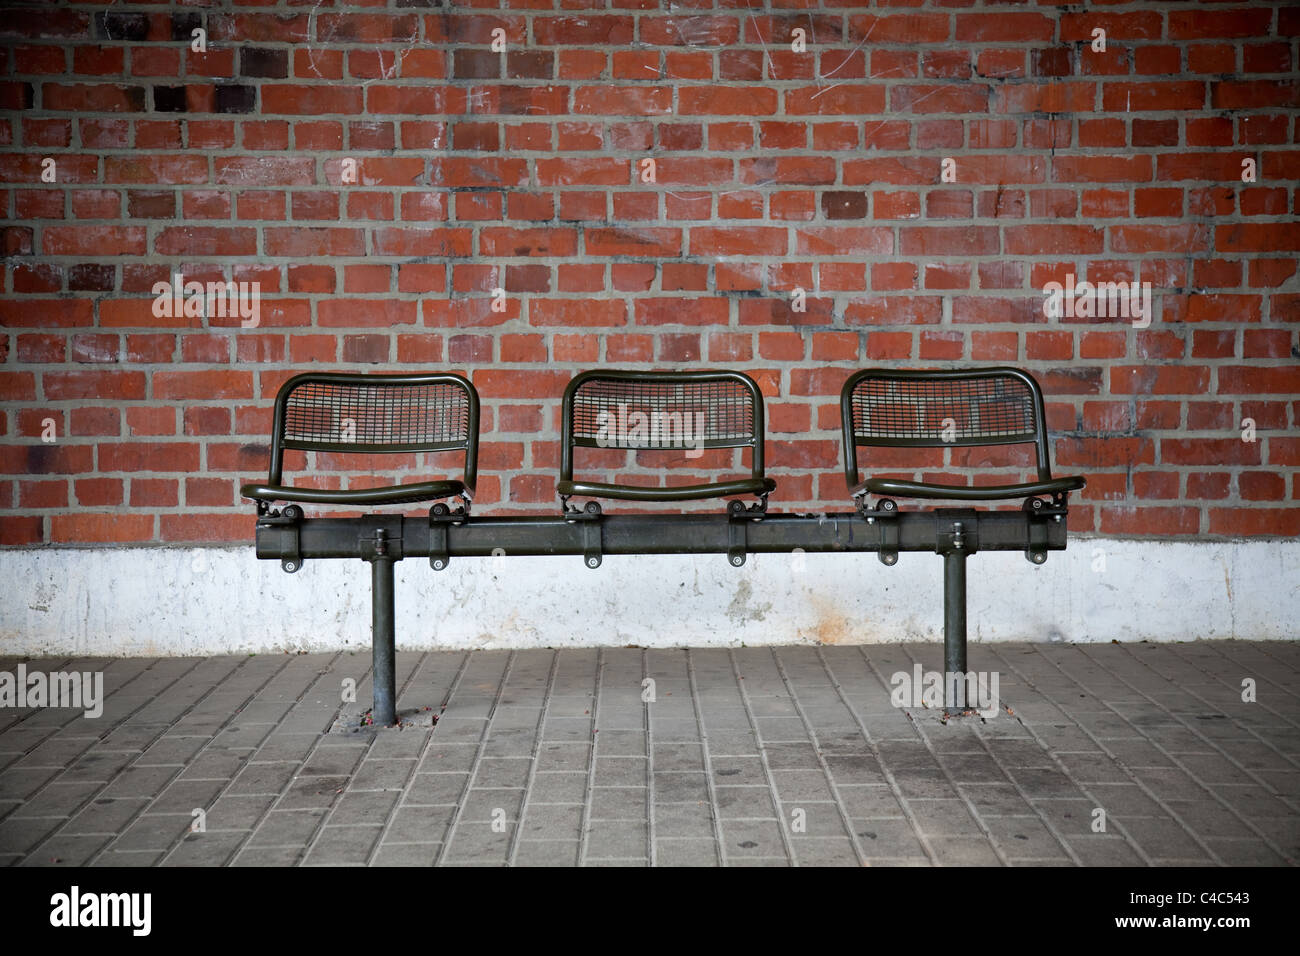 a bench with three seats in front of a brick wall - Stock Image